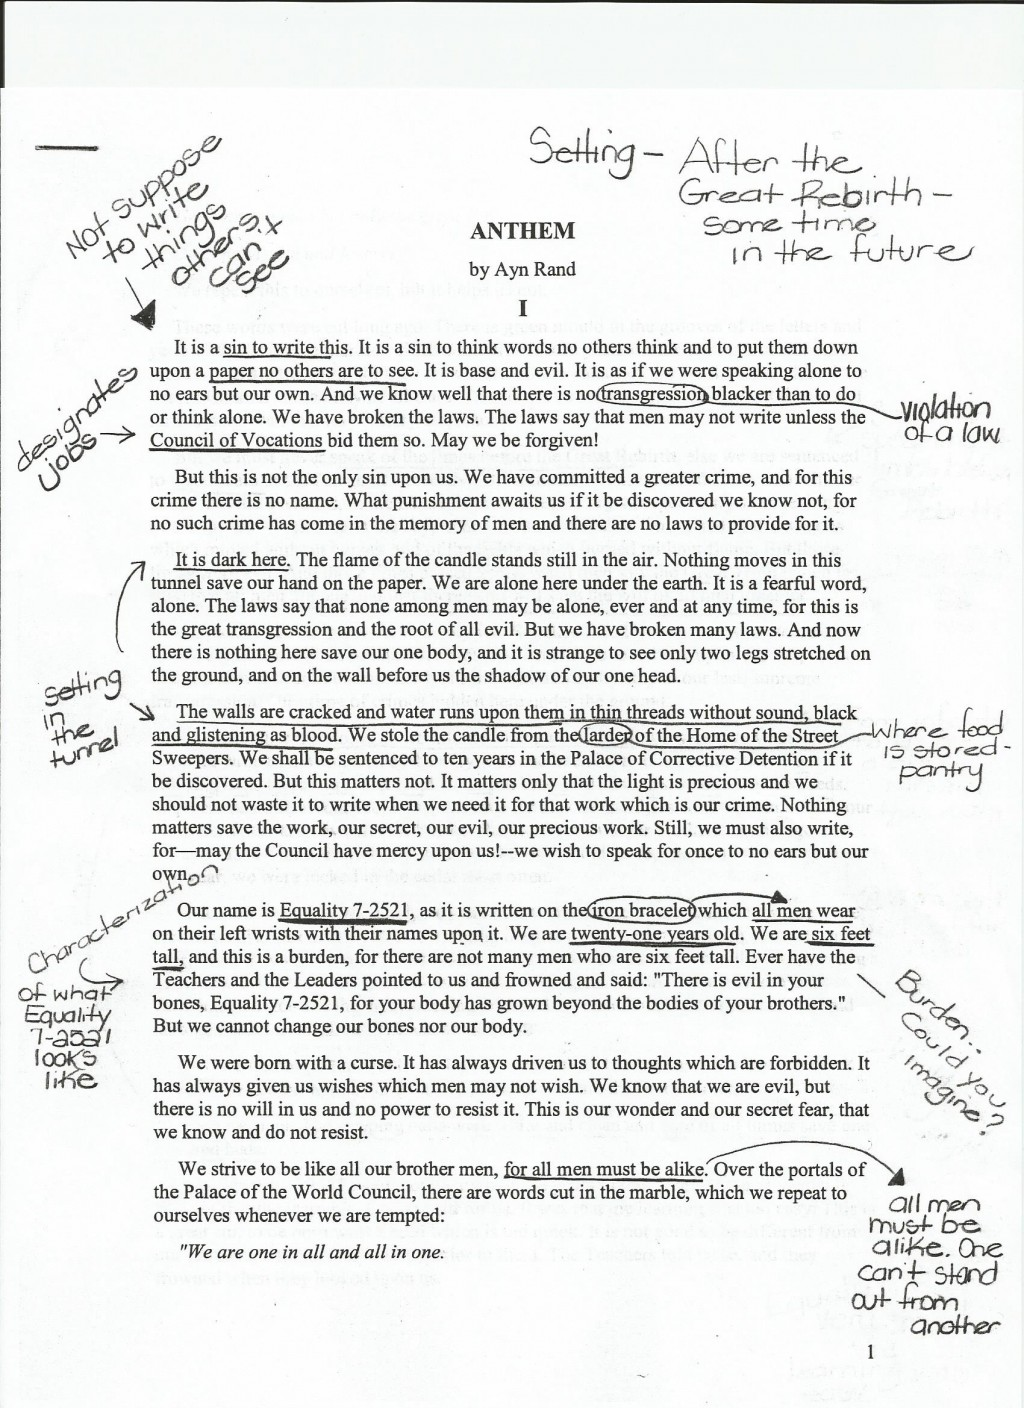 009 Anthem20annotations20example201 Essay Example How Tonotate Wondrous To Annotate An A Movie In Critical Large